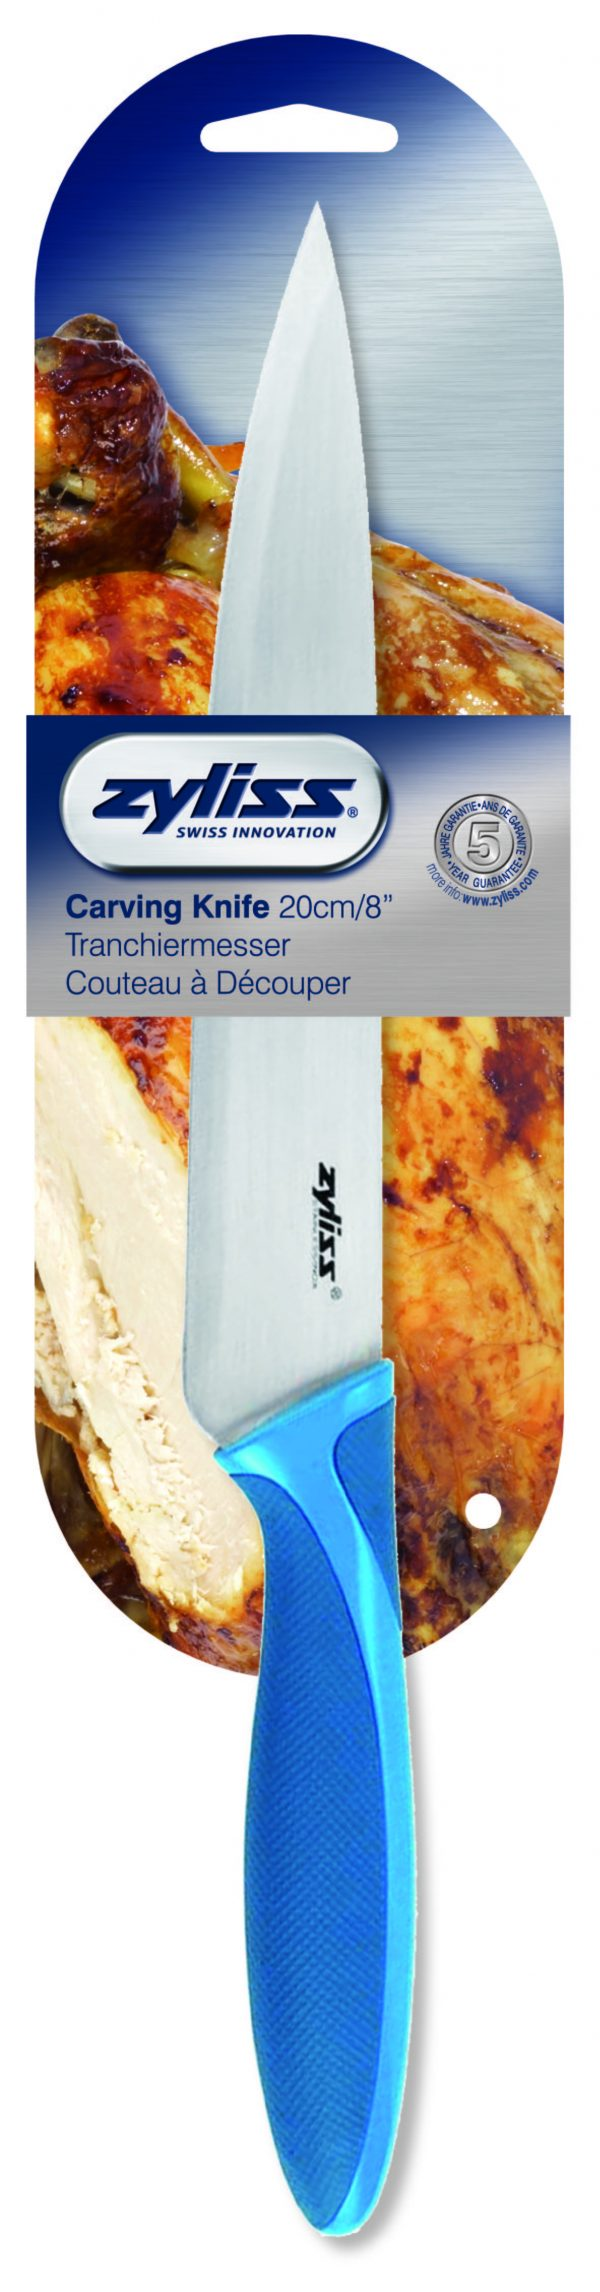 e72414 31395 stainless carving knife packaging scaled